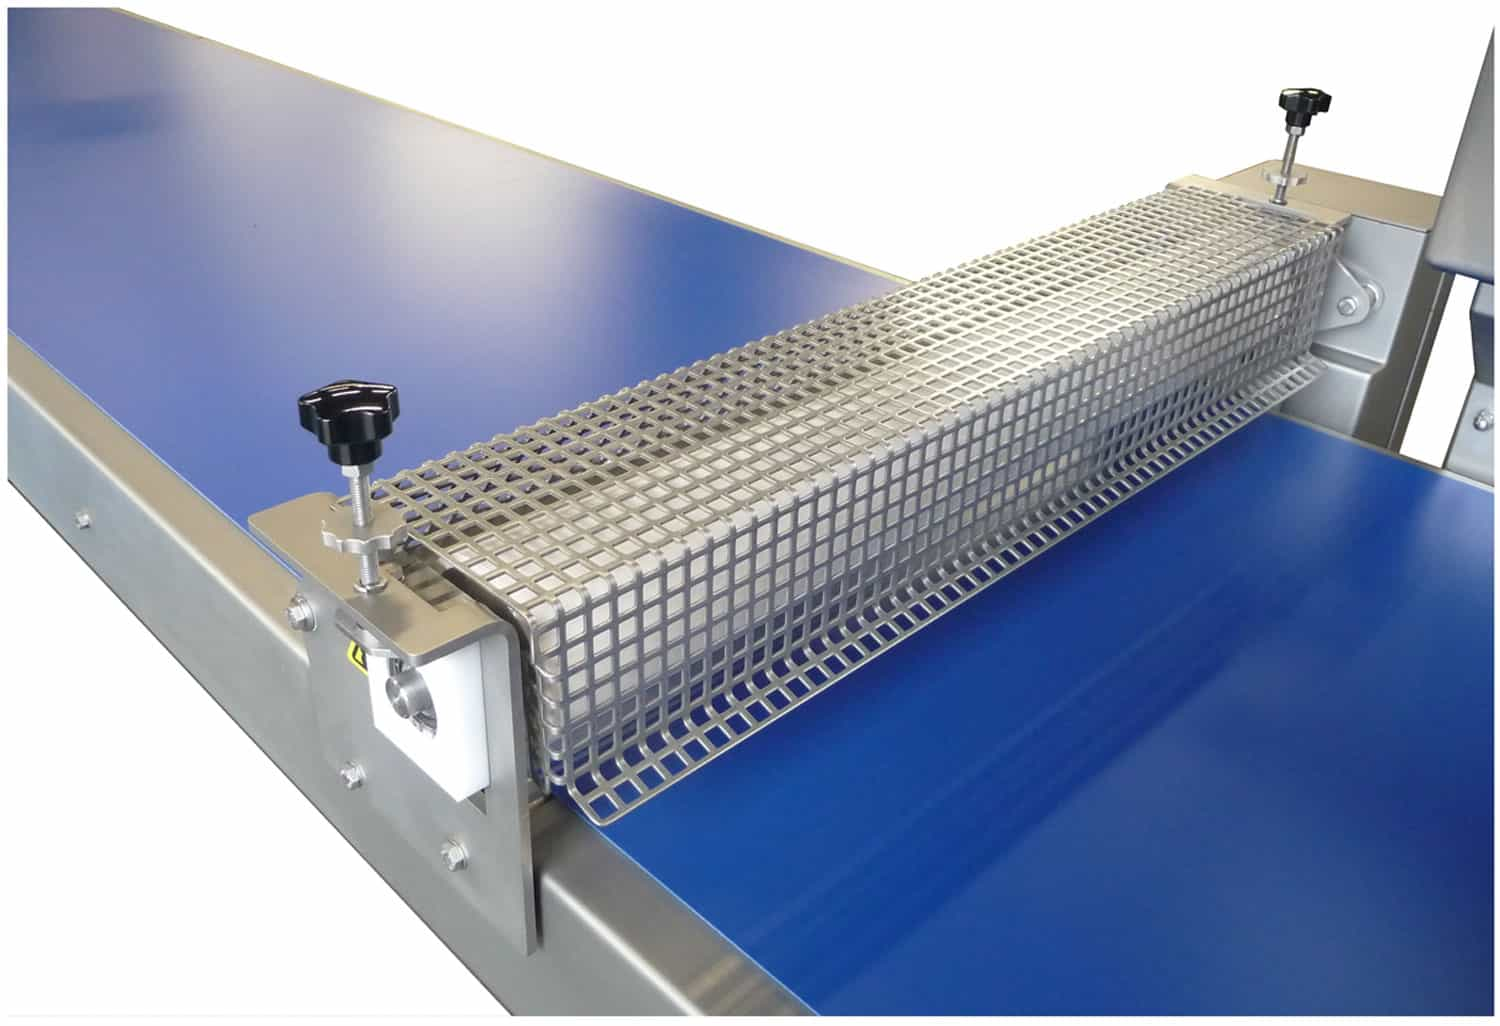 Semi-automatic finishing line 03 Tonnaer Mixing Systems